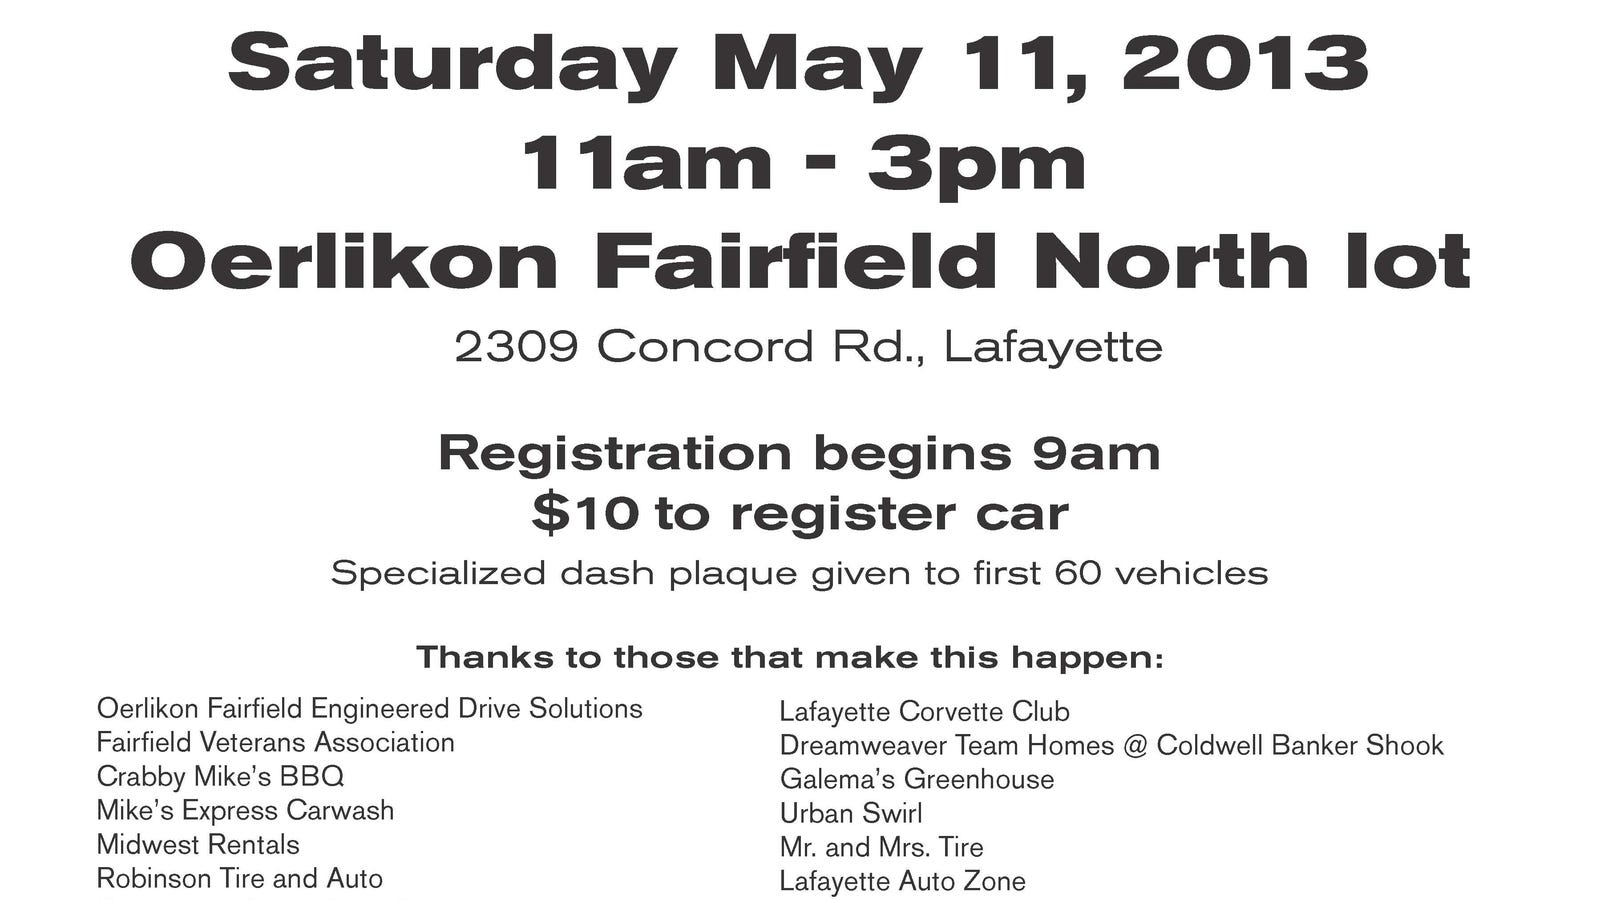 Shameless plug, come to my club's car show  (if kinja works   )